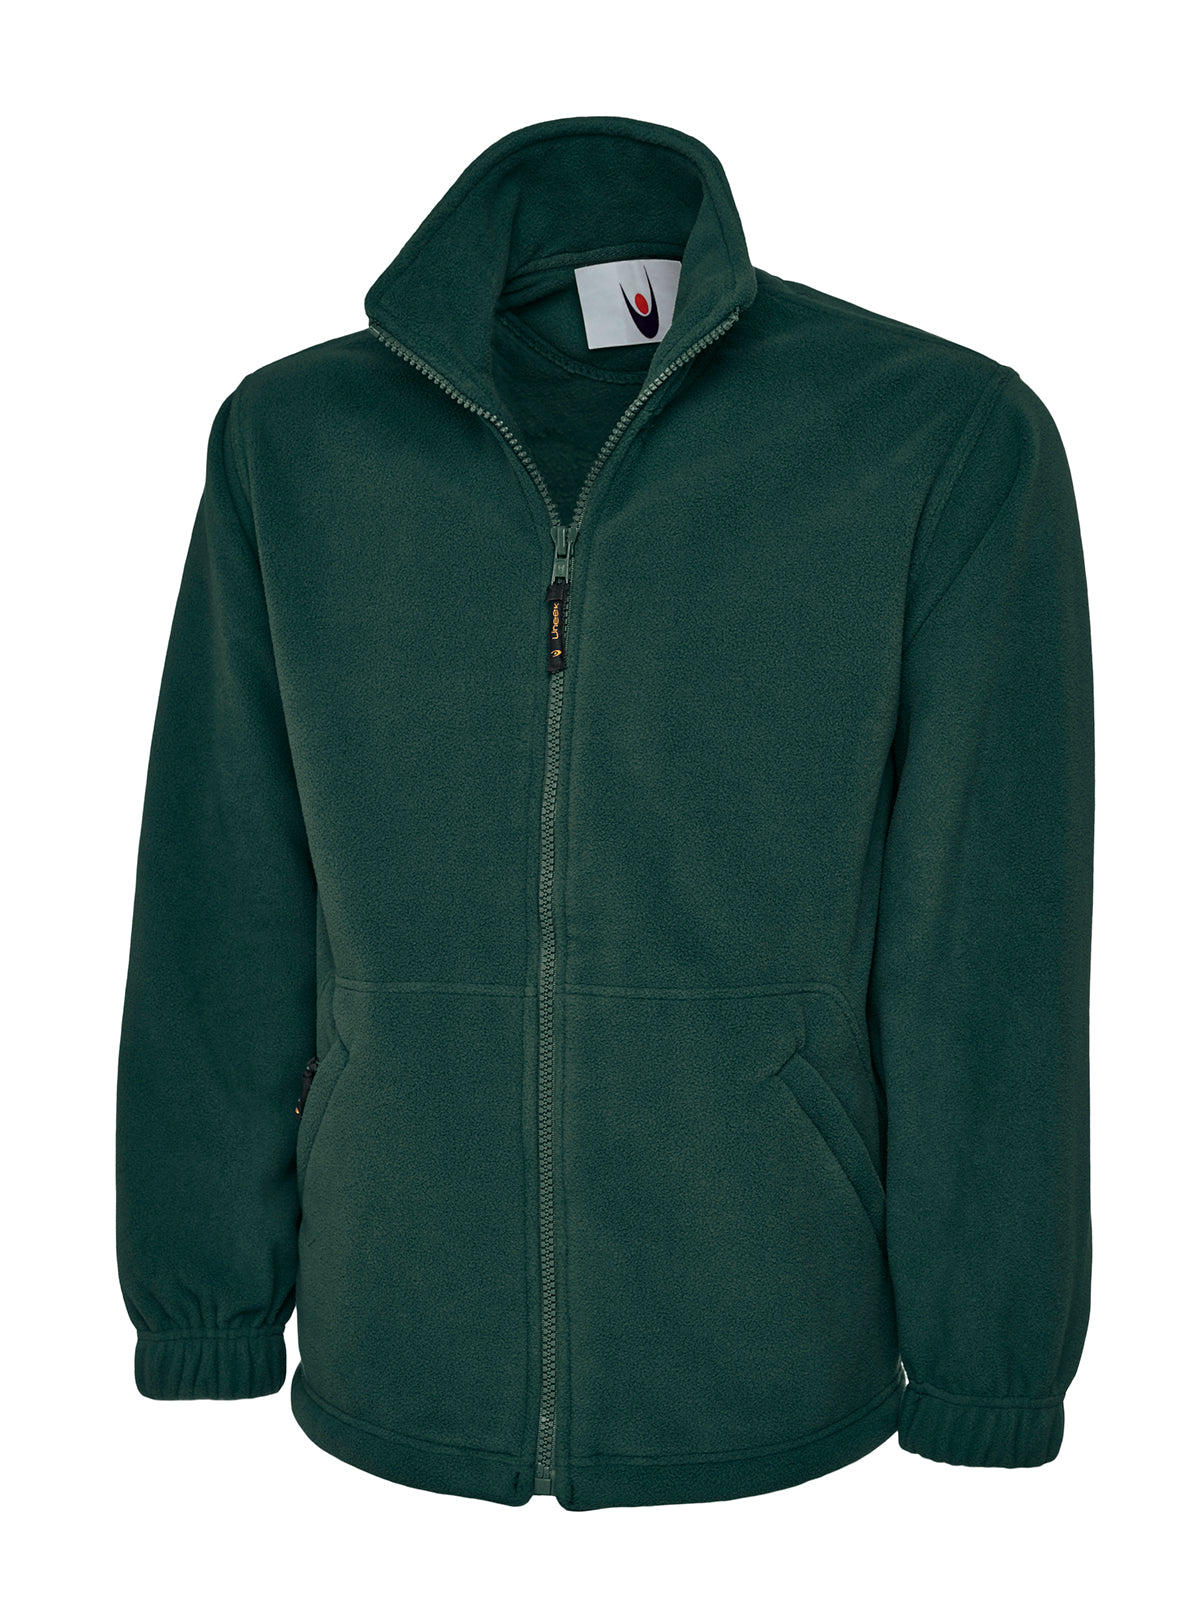 Premium Full Zip Micro Fleece Jacket